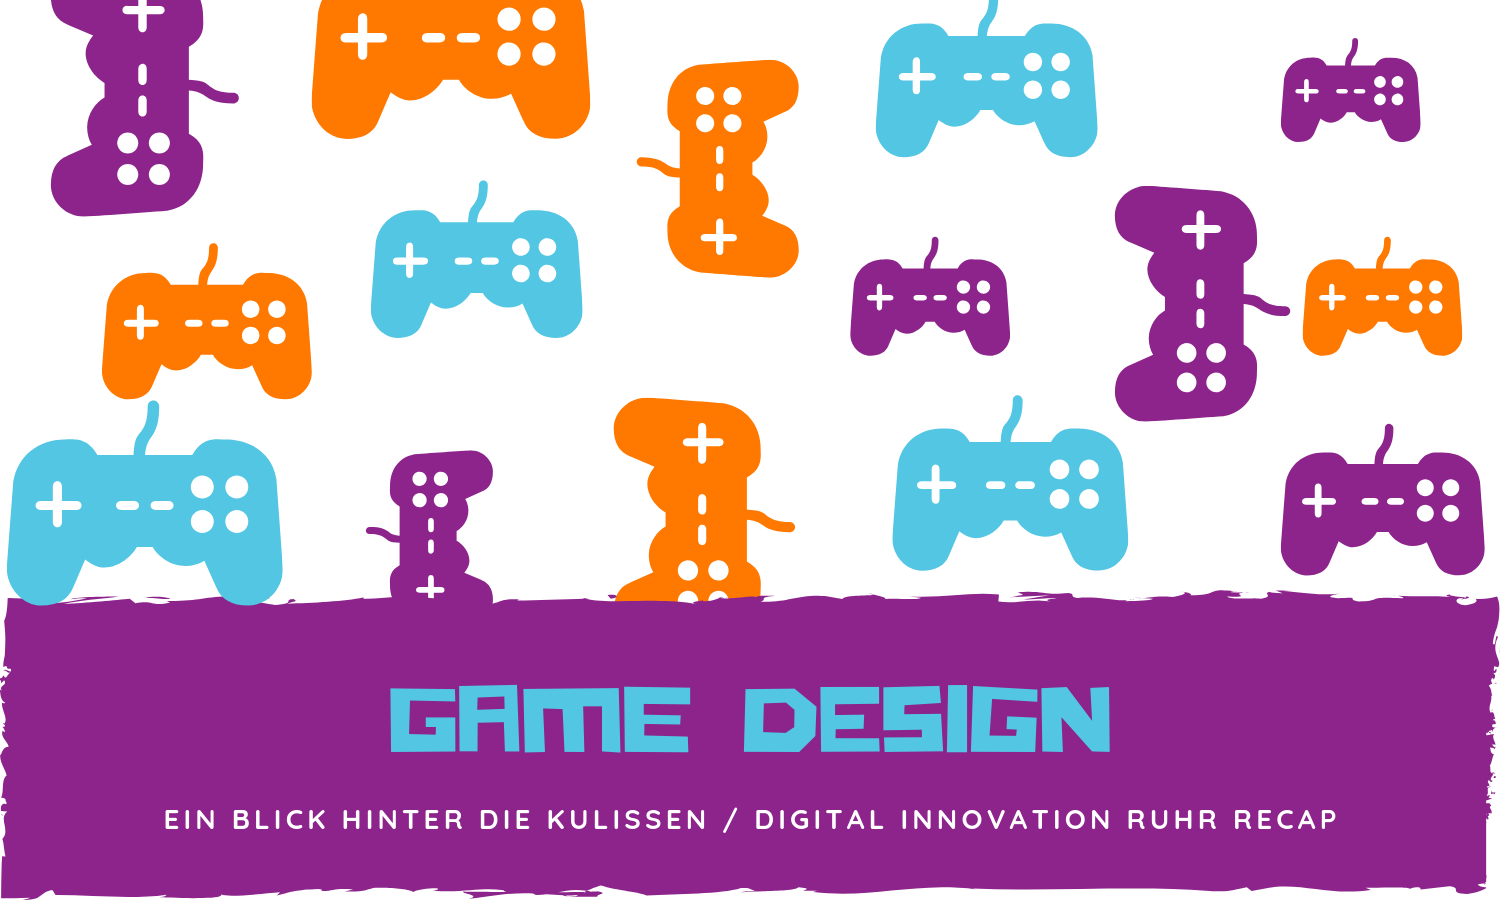 Game Design: Ein Job in der Spieleindustrie